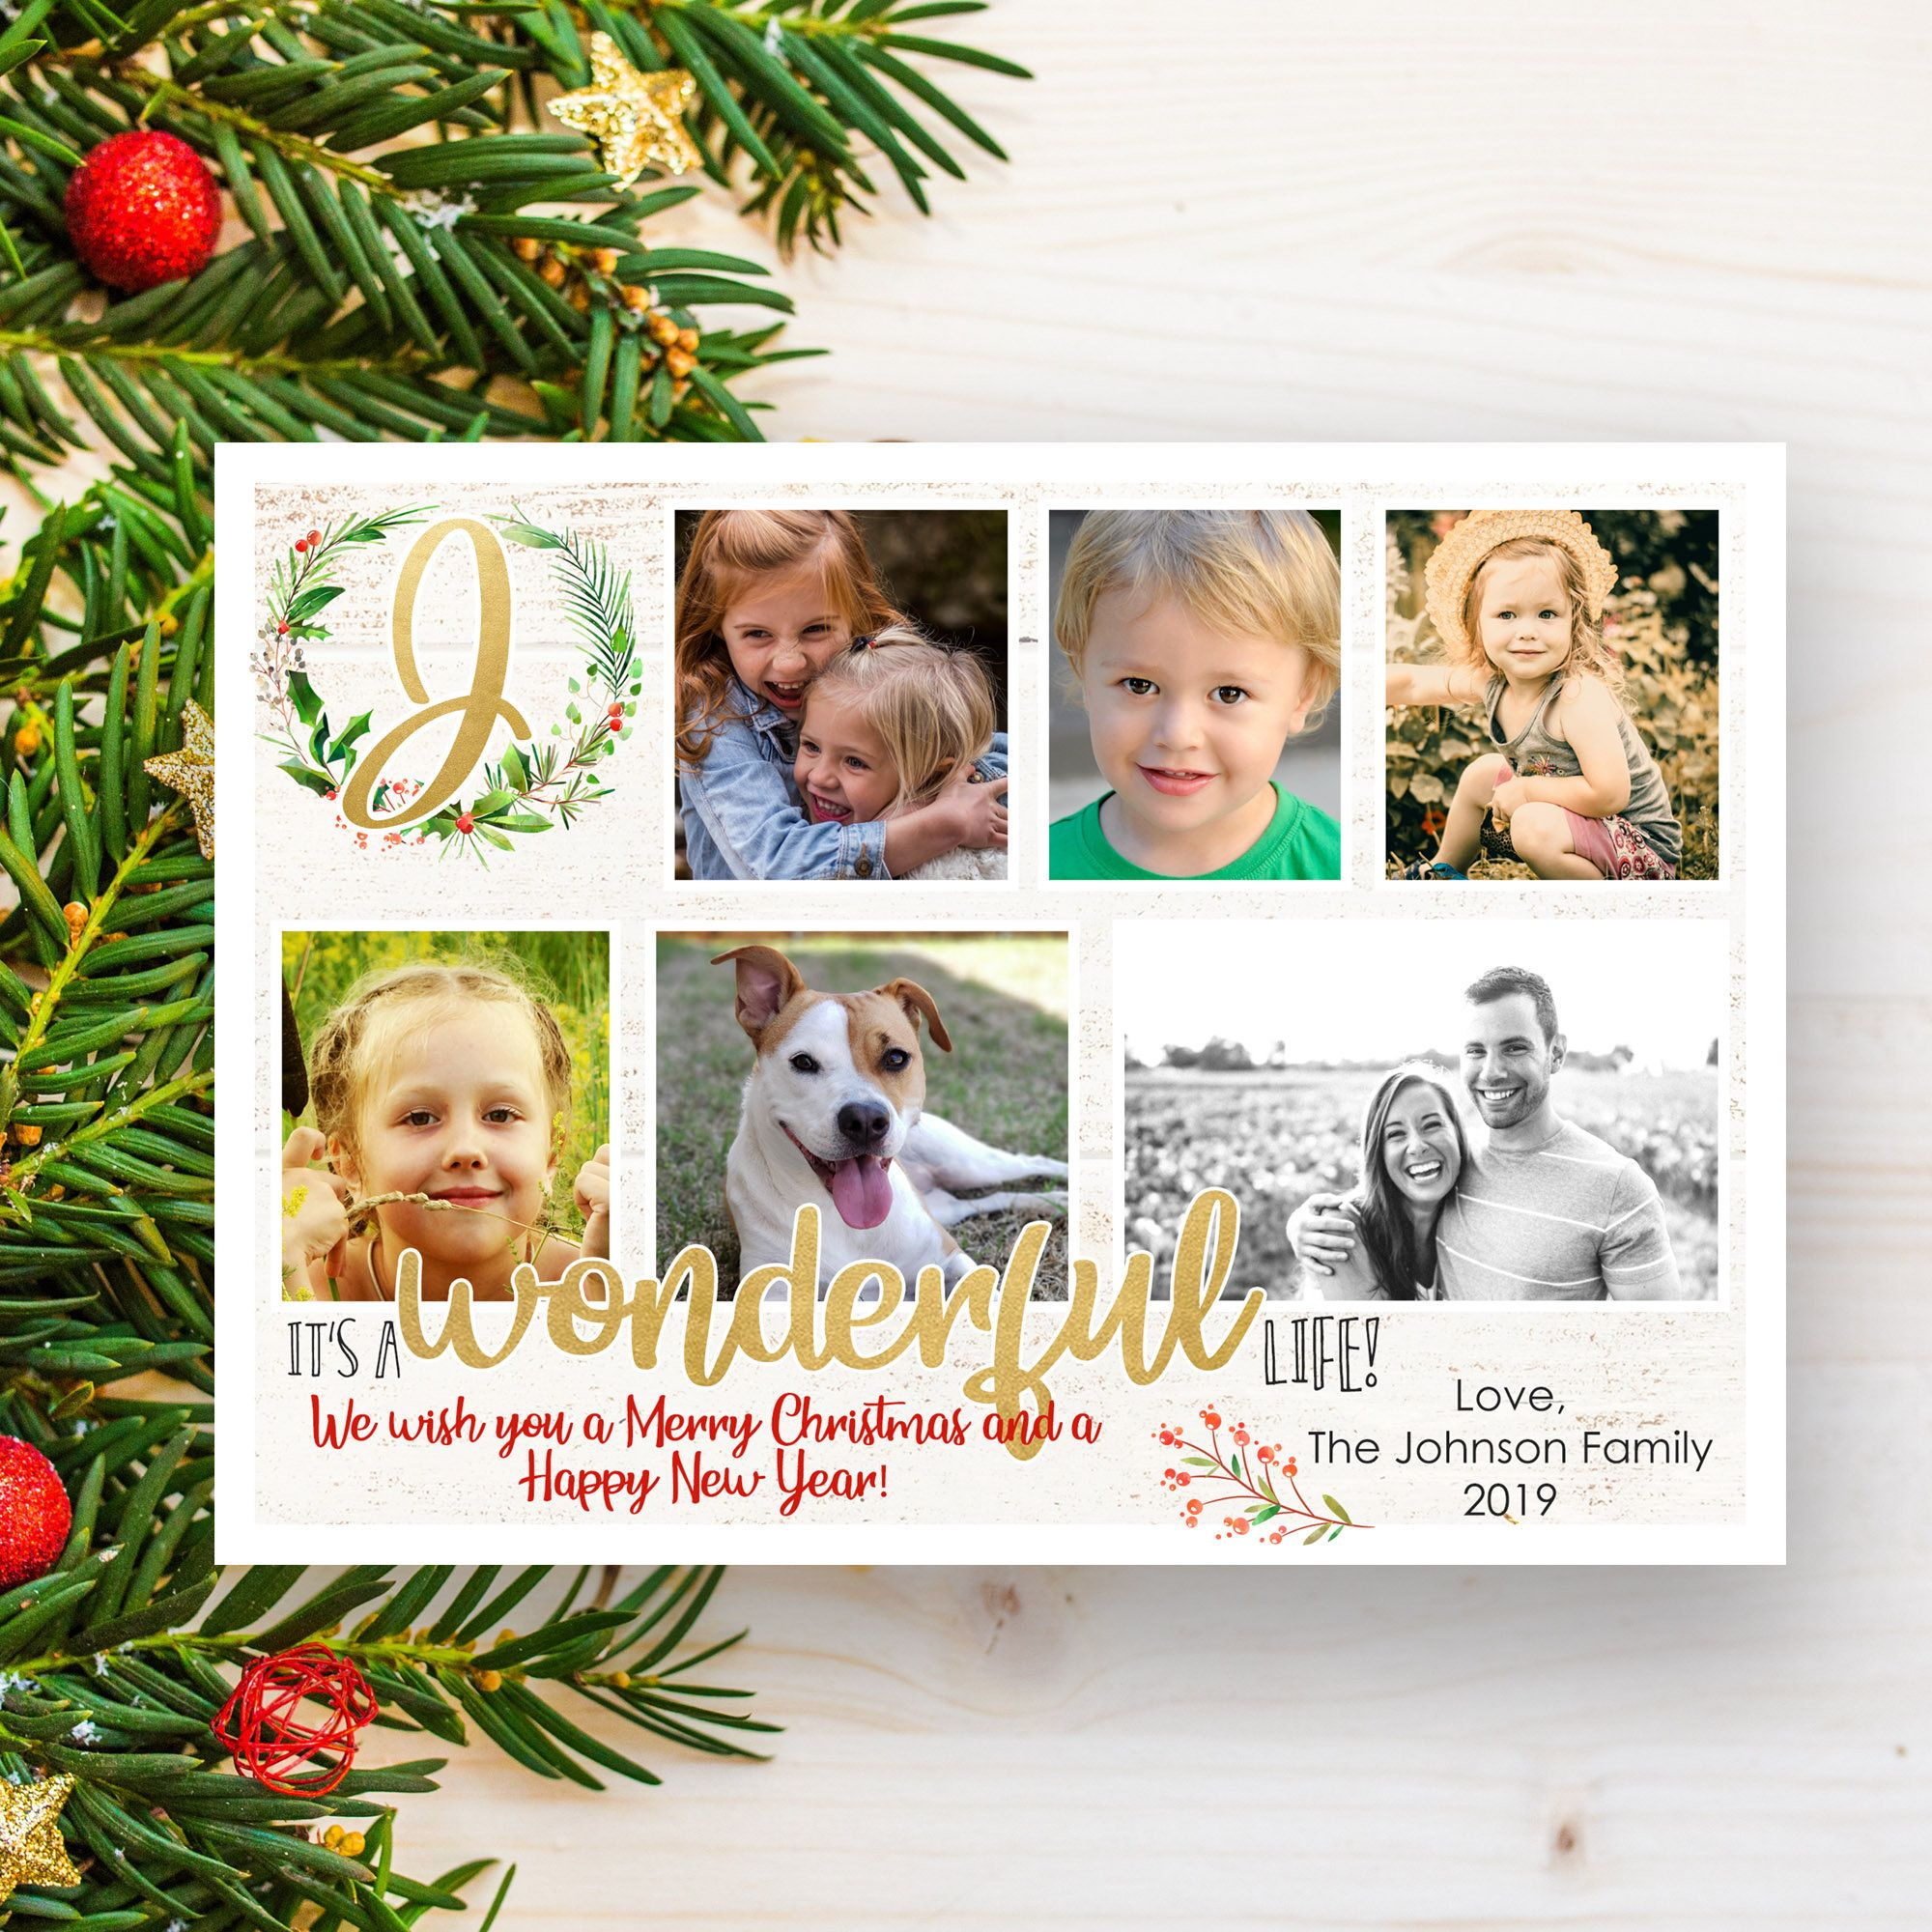 Christmas Photo Card Template Family Photo Cards Happy Holiday Cards Printable C Happy Holiday Cards Christmas Photo Card Template Christmas Photo Cards